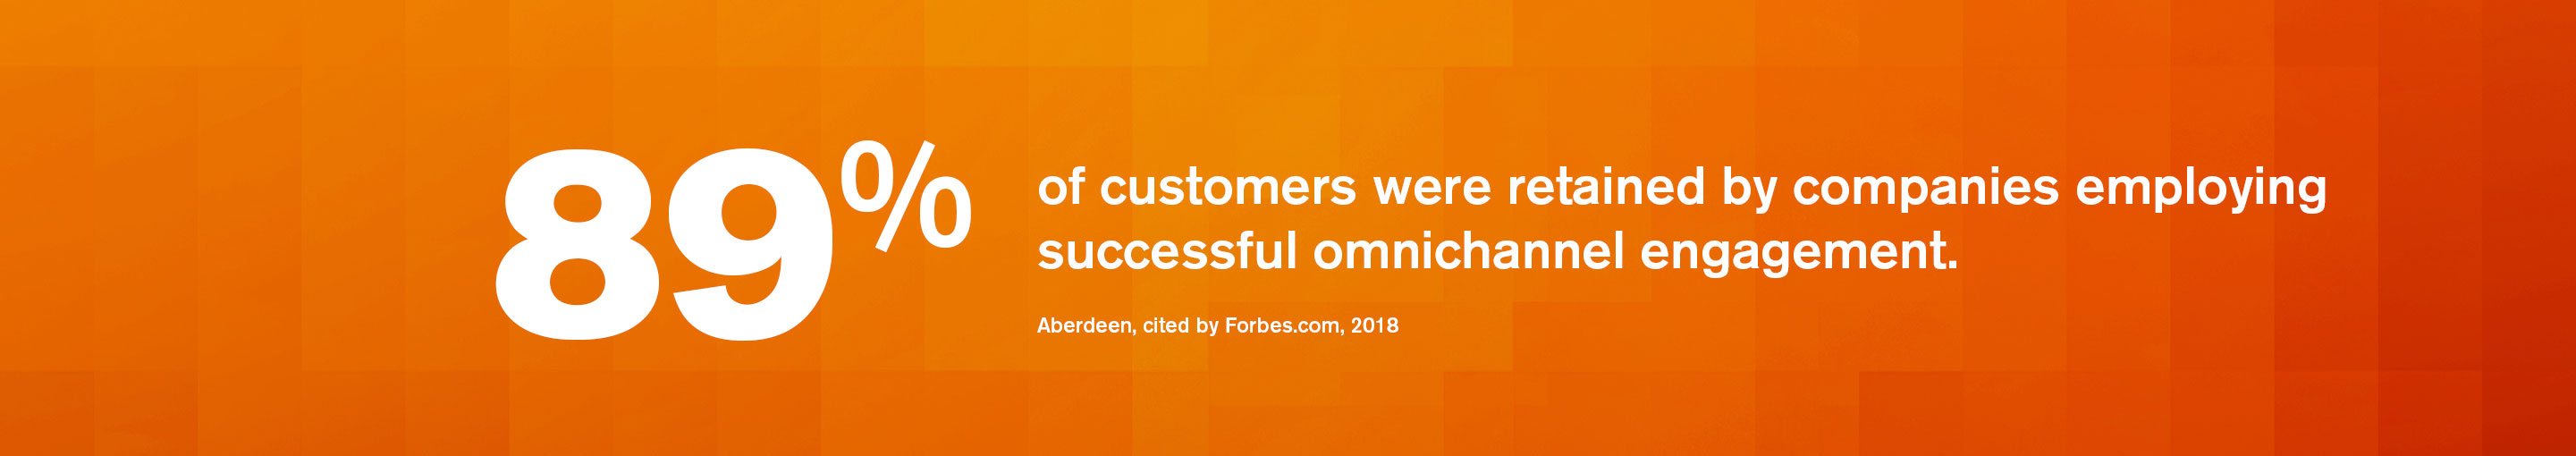 CMDM improves business outcomes.